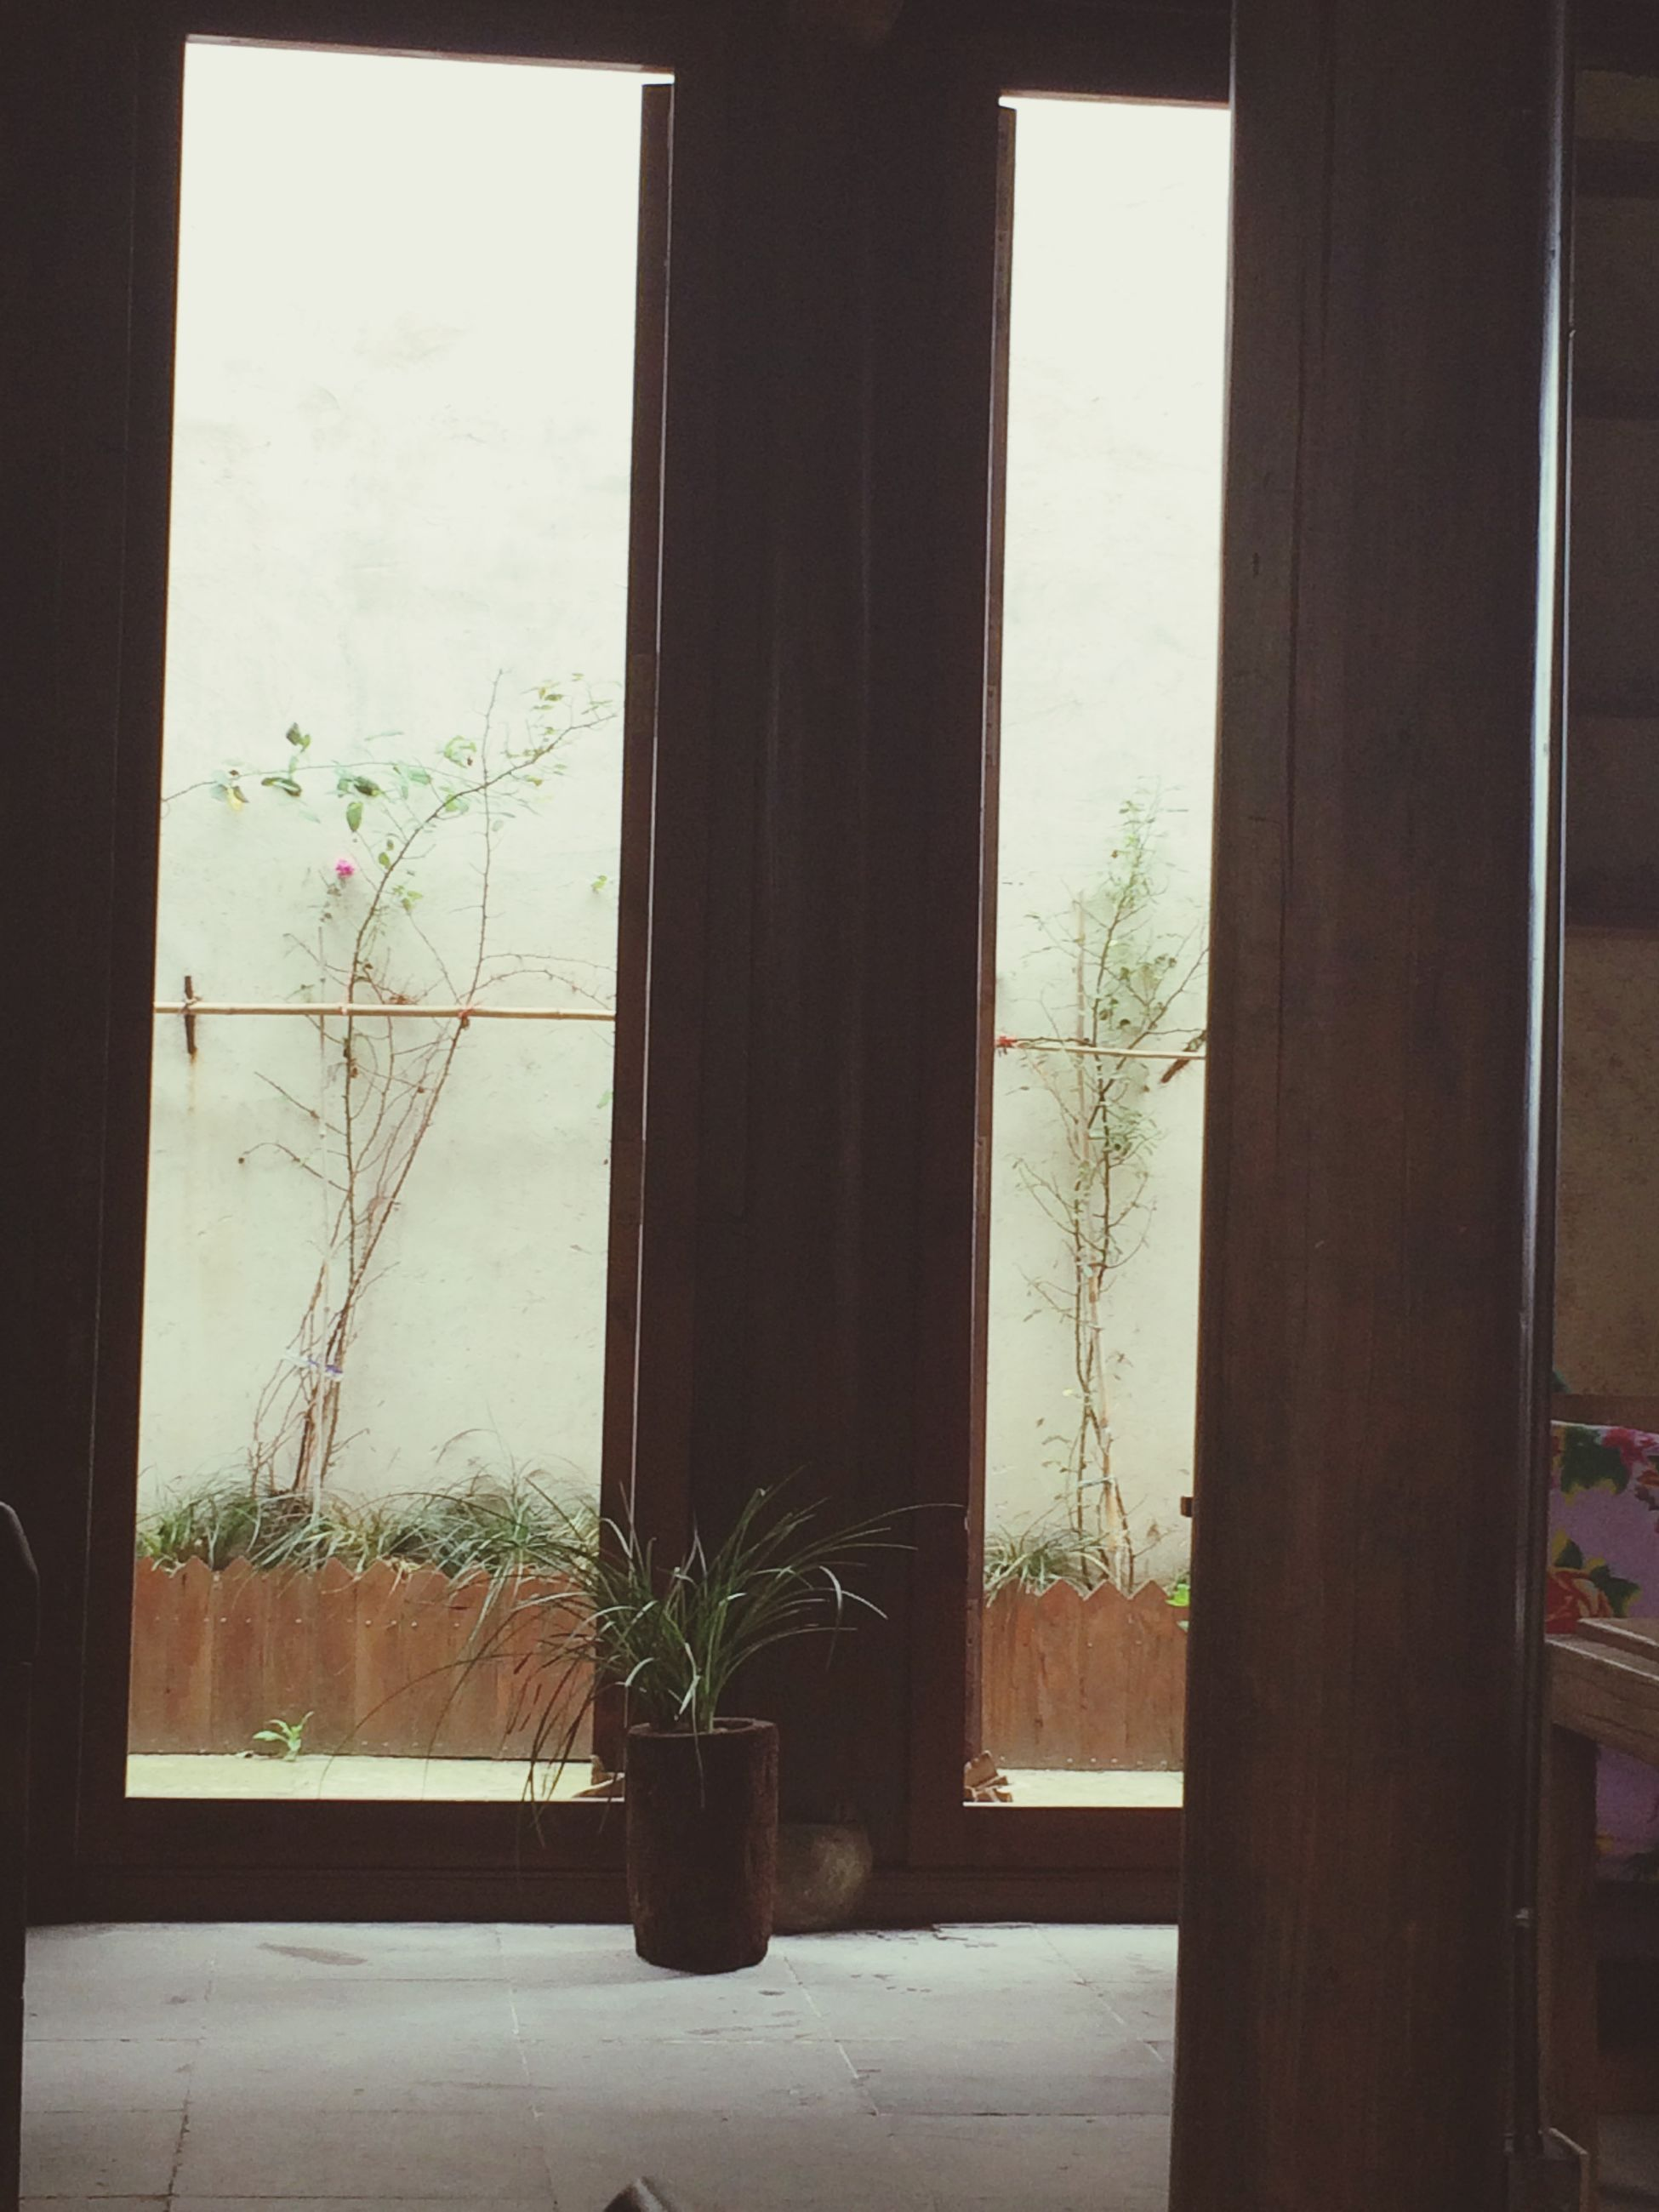 window, indoors, glass - material, transparent, home interior, window sill, potted plant, tree, curtain, plant, built structure, architecture, house, growth, day, looking through window, door, no people, glass, nature